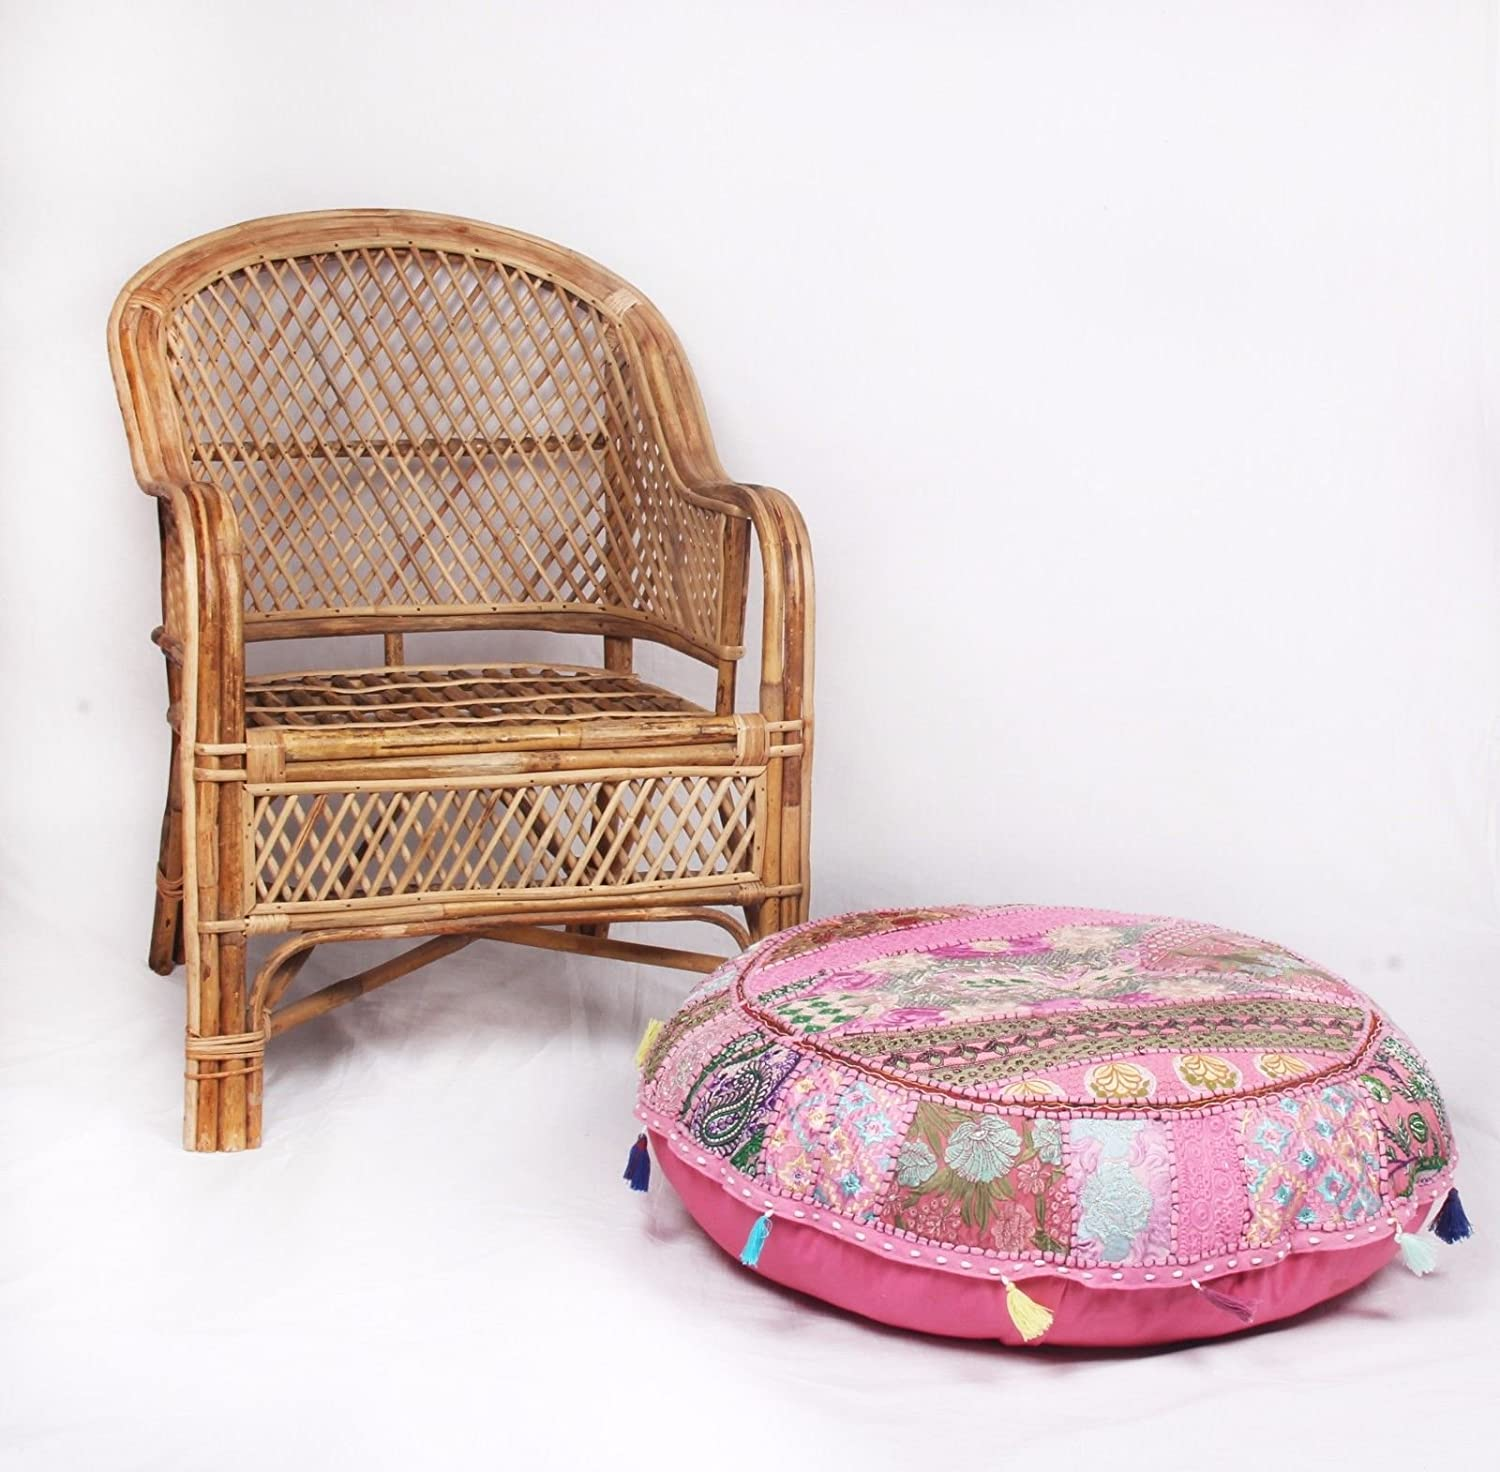 Beautiful Decorative Ruond Ottoman Indian Patchwork Pouffe,Indian Traditional Home Decorative Handmade Cotton Ottoman Patchwork Foot Stool, Embroidered Chair Cover Vintage Pouf 32 (Pink Sophia Art